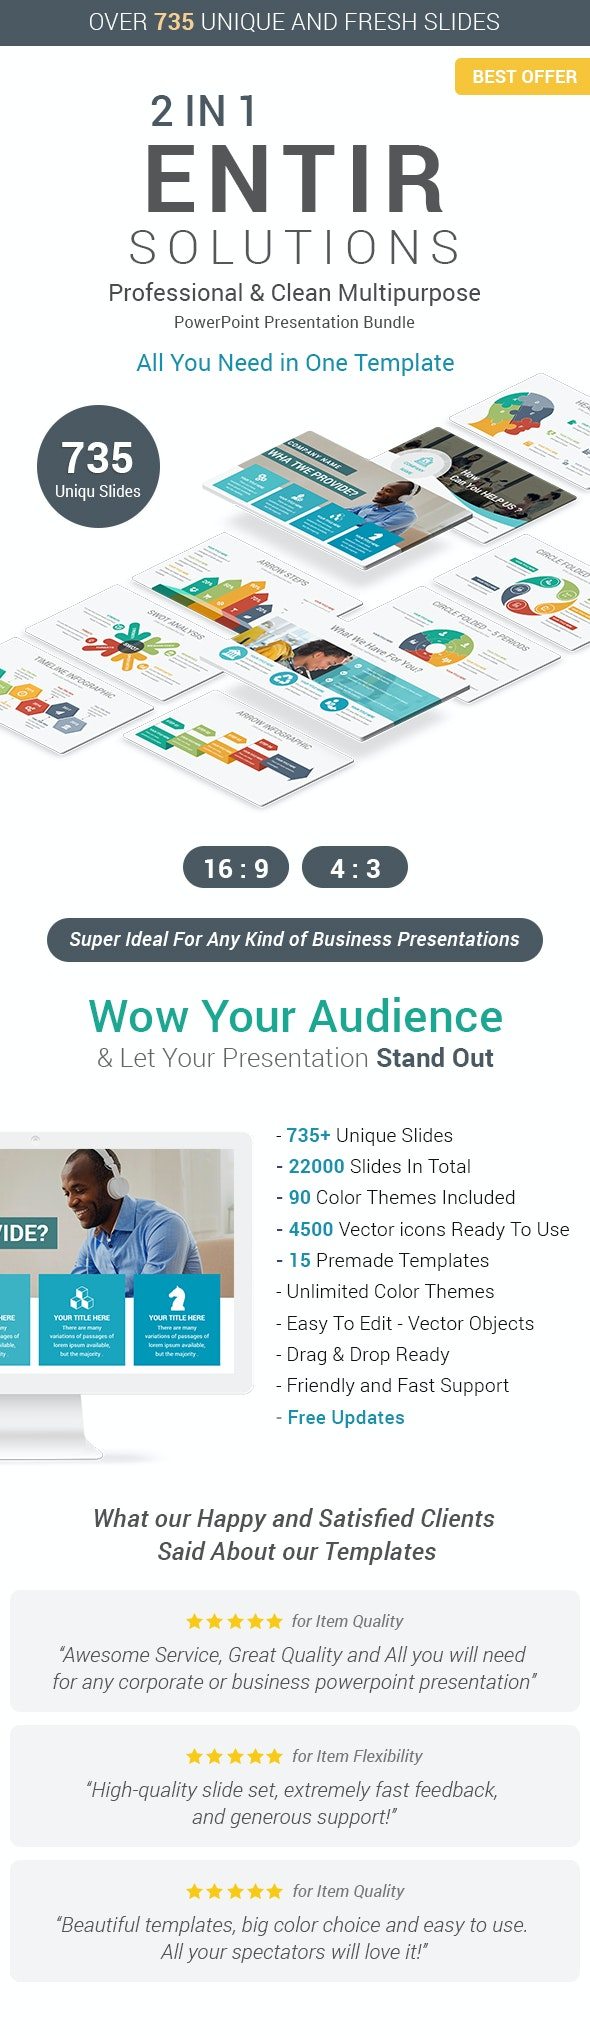 Entire Solutions - 2 In 1 Best PowerPoint Templates Bundle - Business PowerPoint Templates